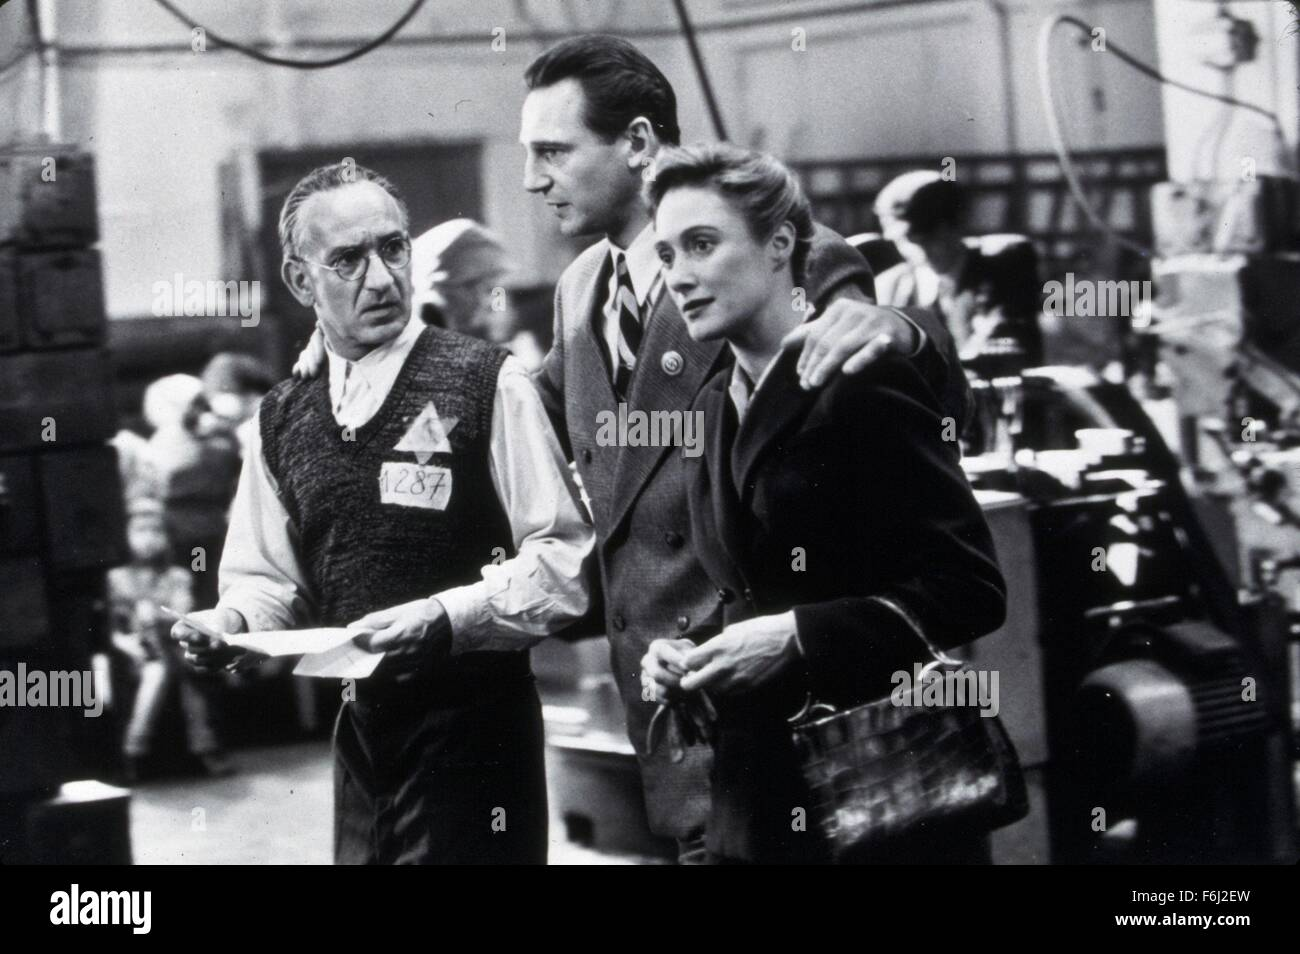 a movie analysis of schindlers list by steven spielberg Schindler's list by steven spielberg com/schindlers-list/study-guide/summary in and provide critical analysis of the movie schindler's list directed.